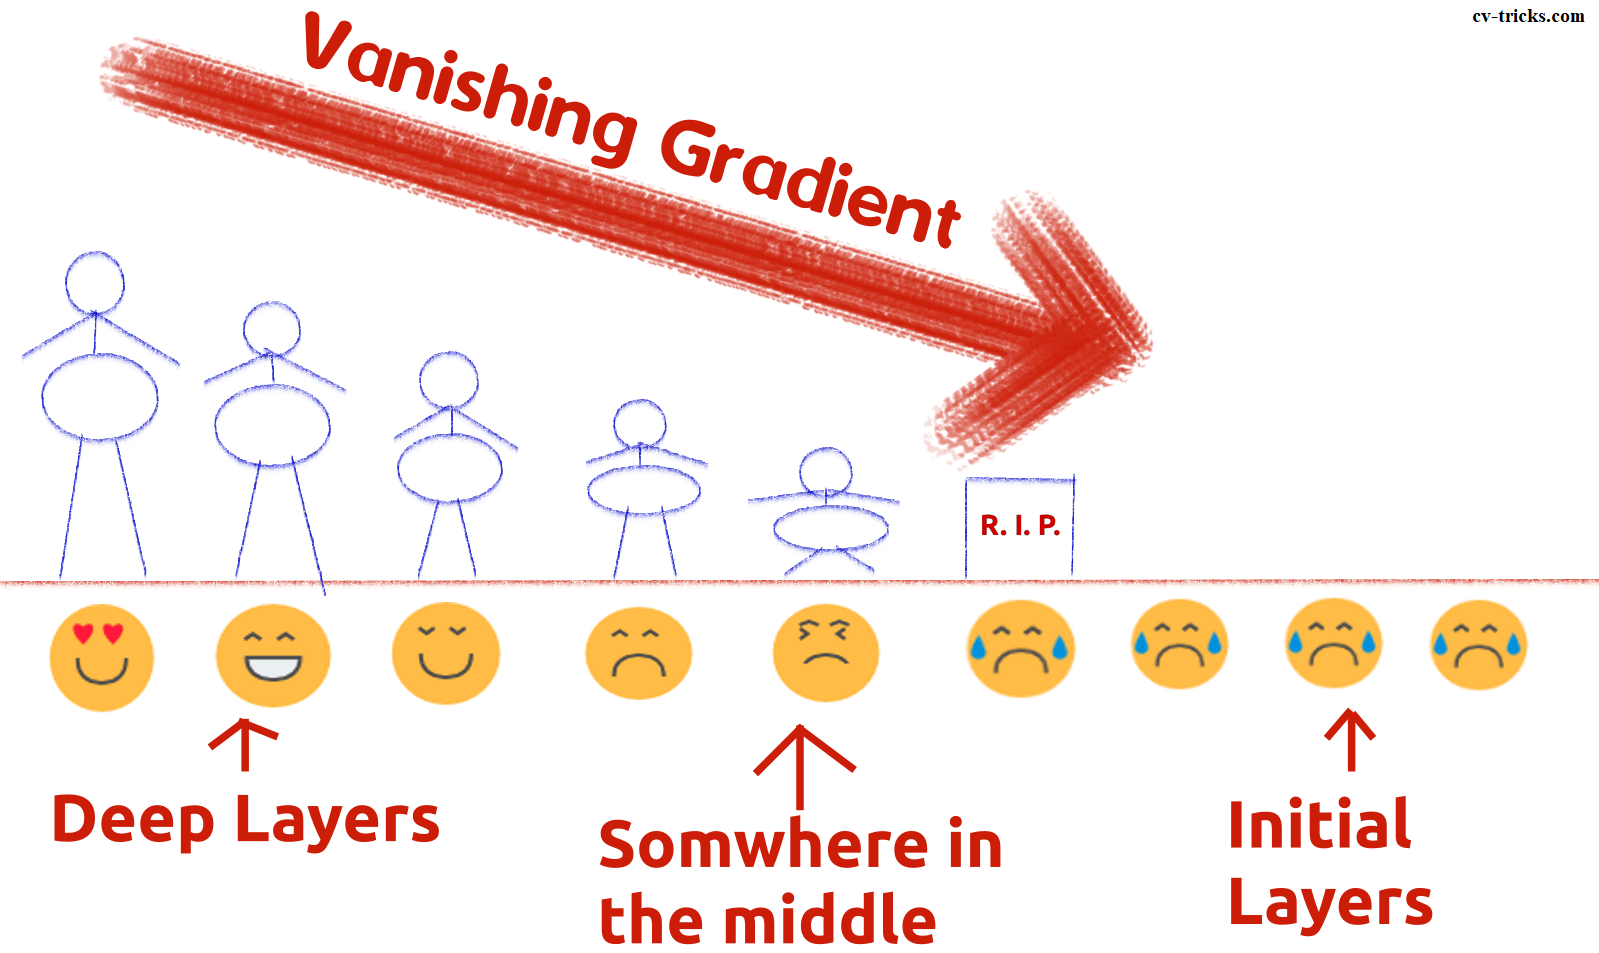 Vanishing Gradient Intuition